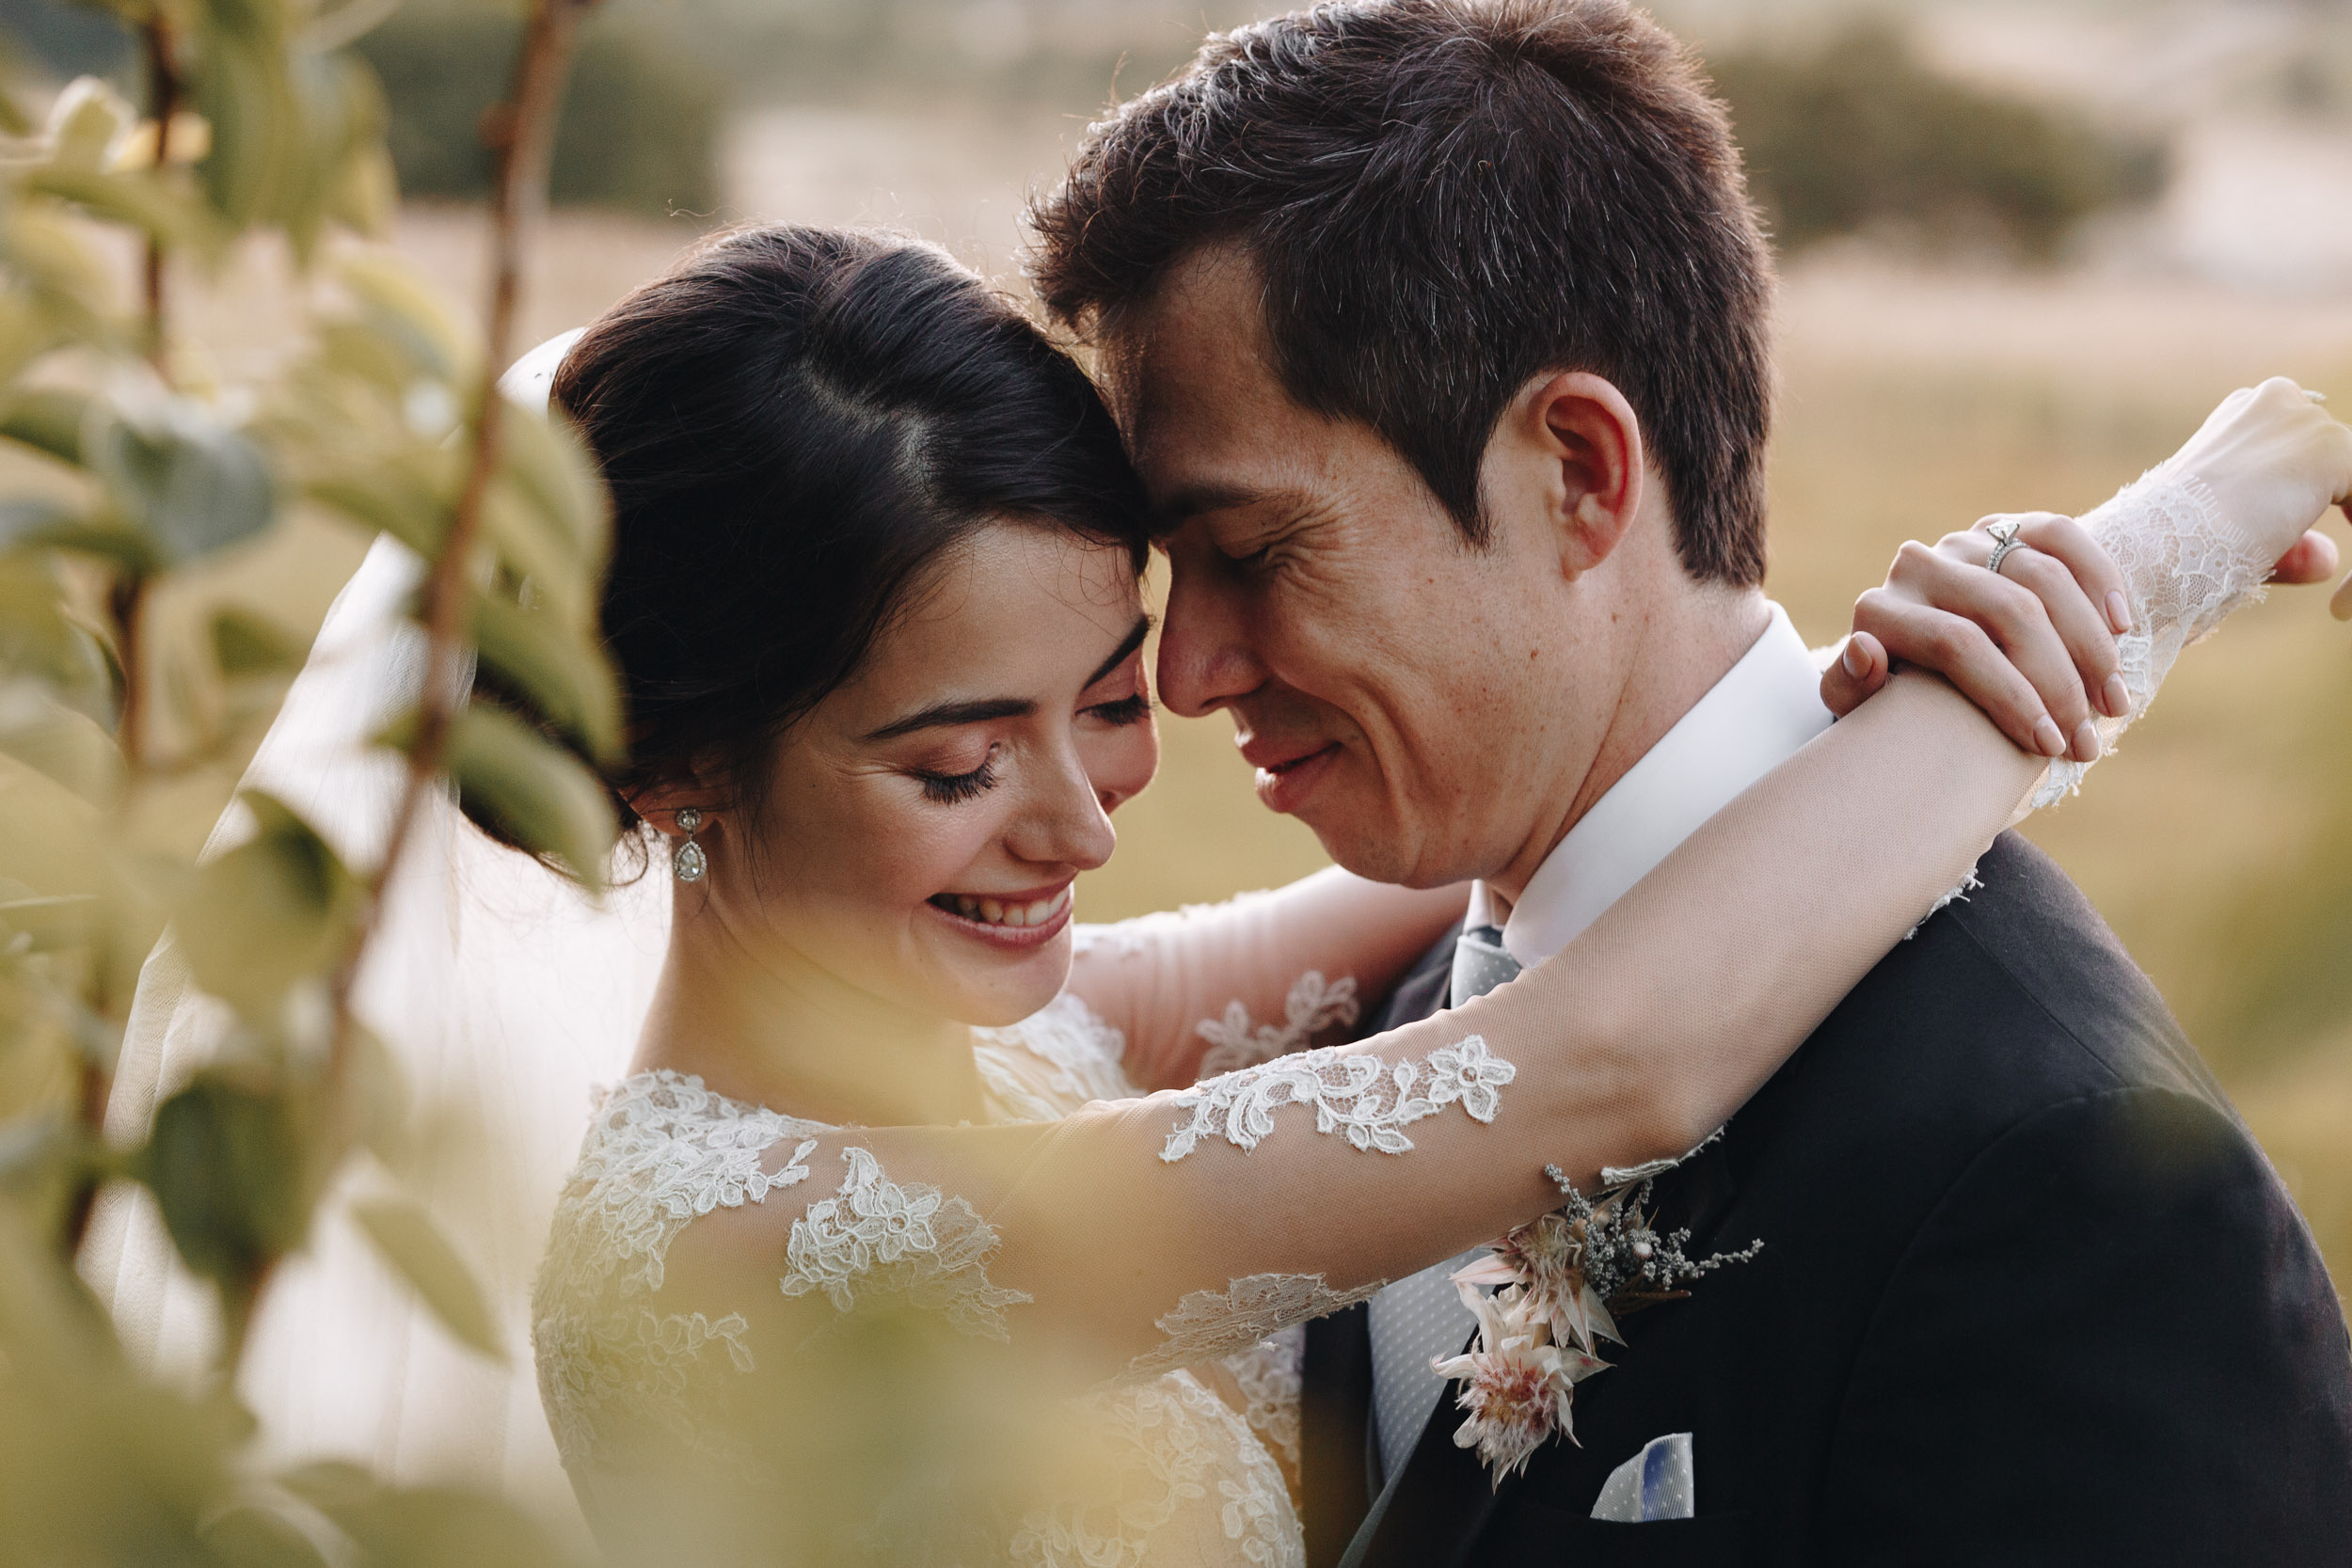 Jenny-Rockett-John-Scranton-Cape-Town-Wedding-Photographer-Andrea-Kellan-185.jpg